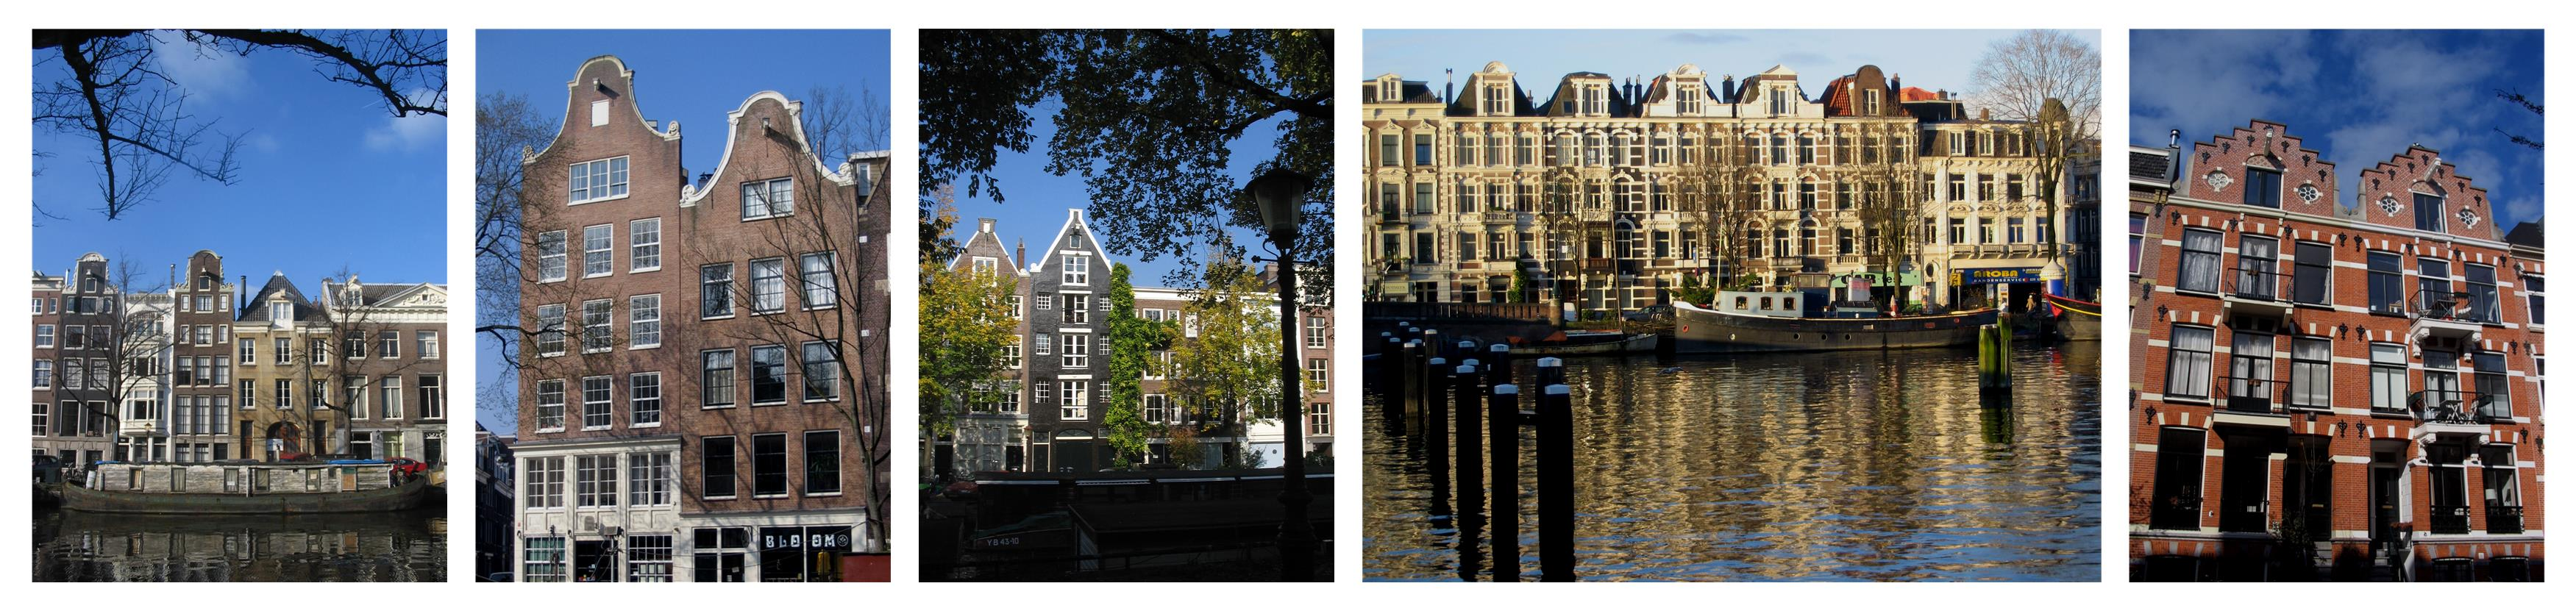 Amsterdam montage Pics for About Us Web Page TOP